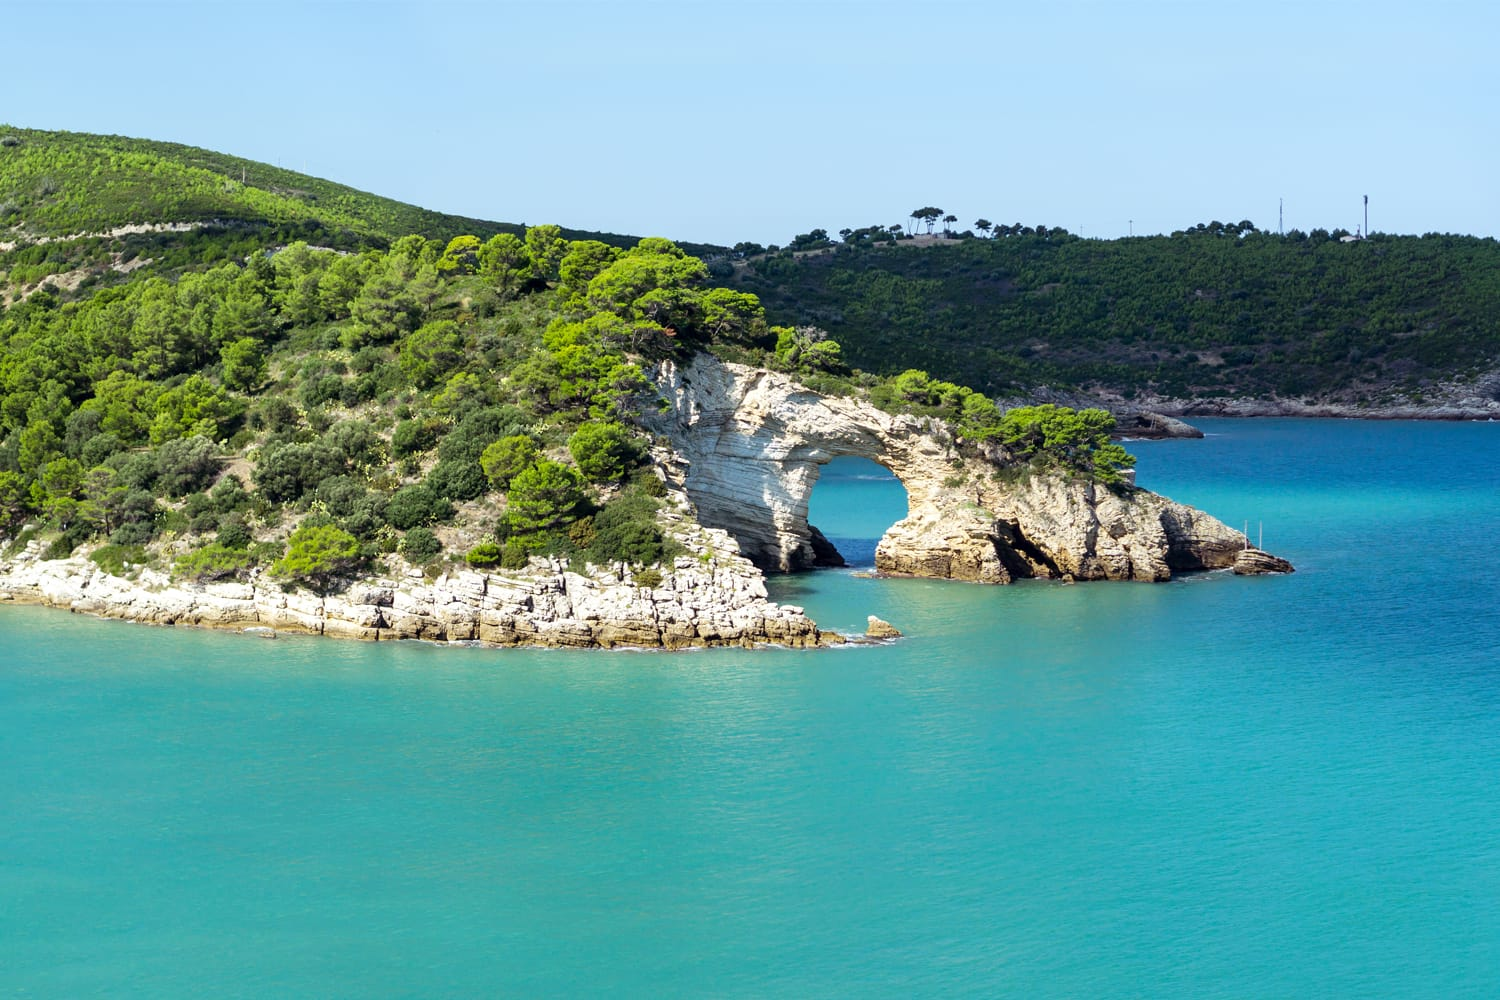 Panorama of Felice Arch located in Gargano National Park in Italy